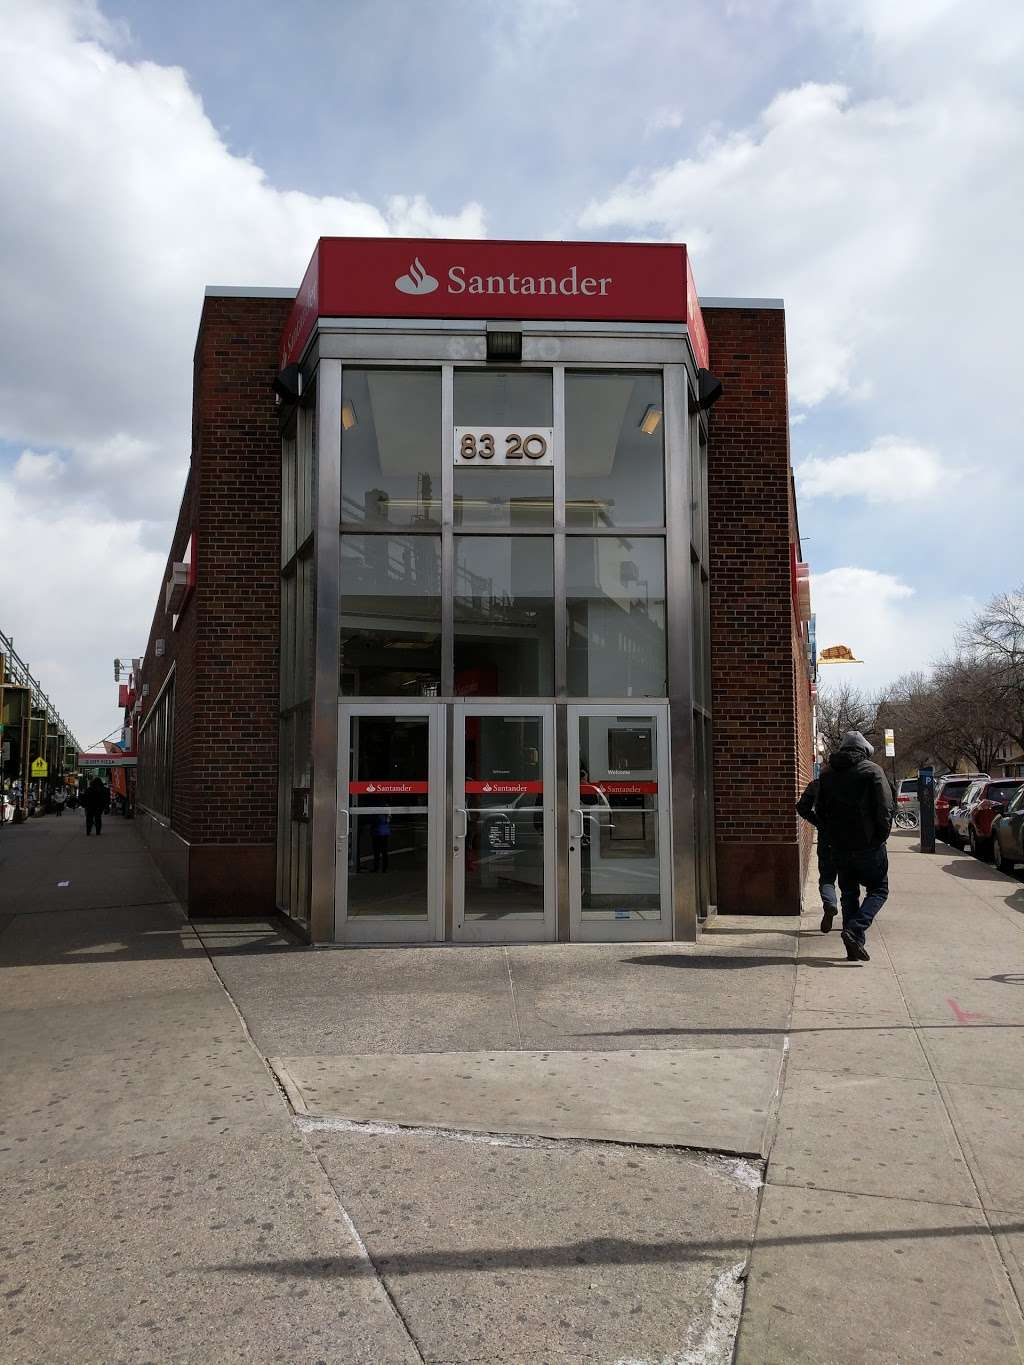 Santander Bank - bank  | Photo 1 of 4 | Address: 83-20 Roosevelt Ave, Jackson Heights, NY 11372, USA | Phone: (718) 457-9800